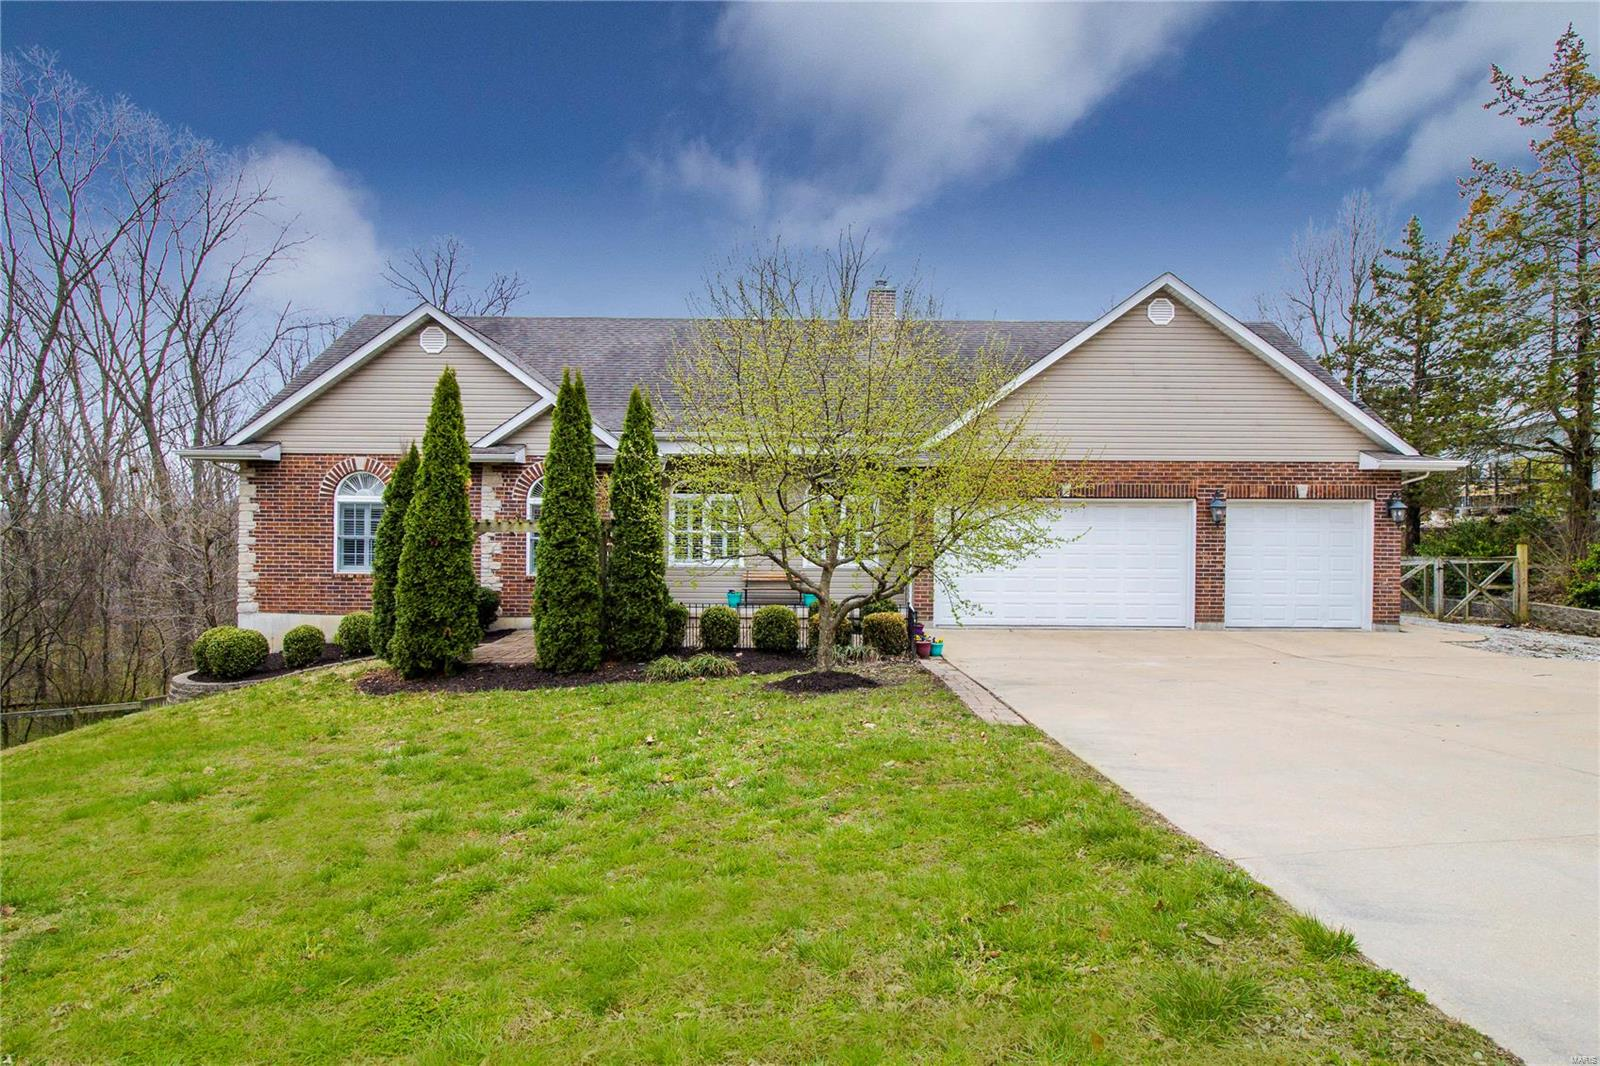 380 Cedar Terrace Property Photo - Union, MO real estate listing